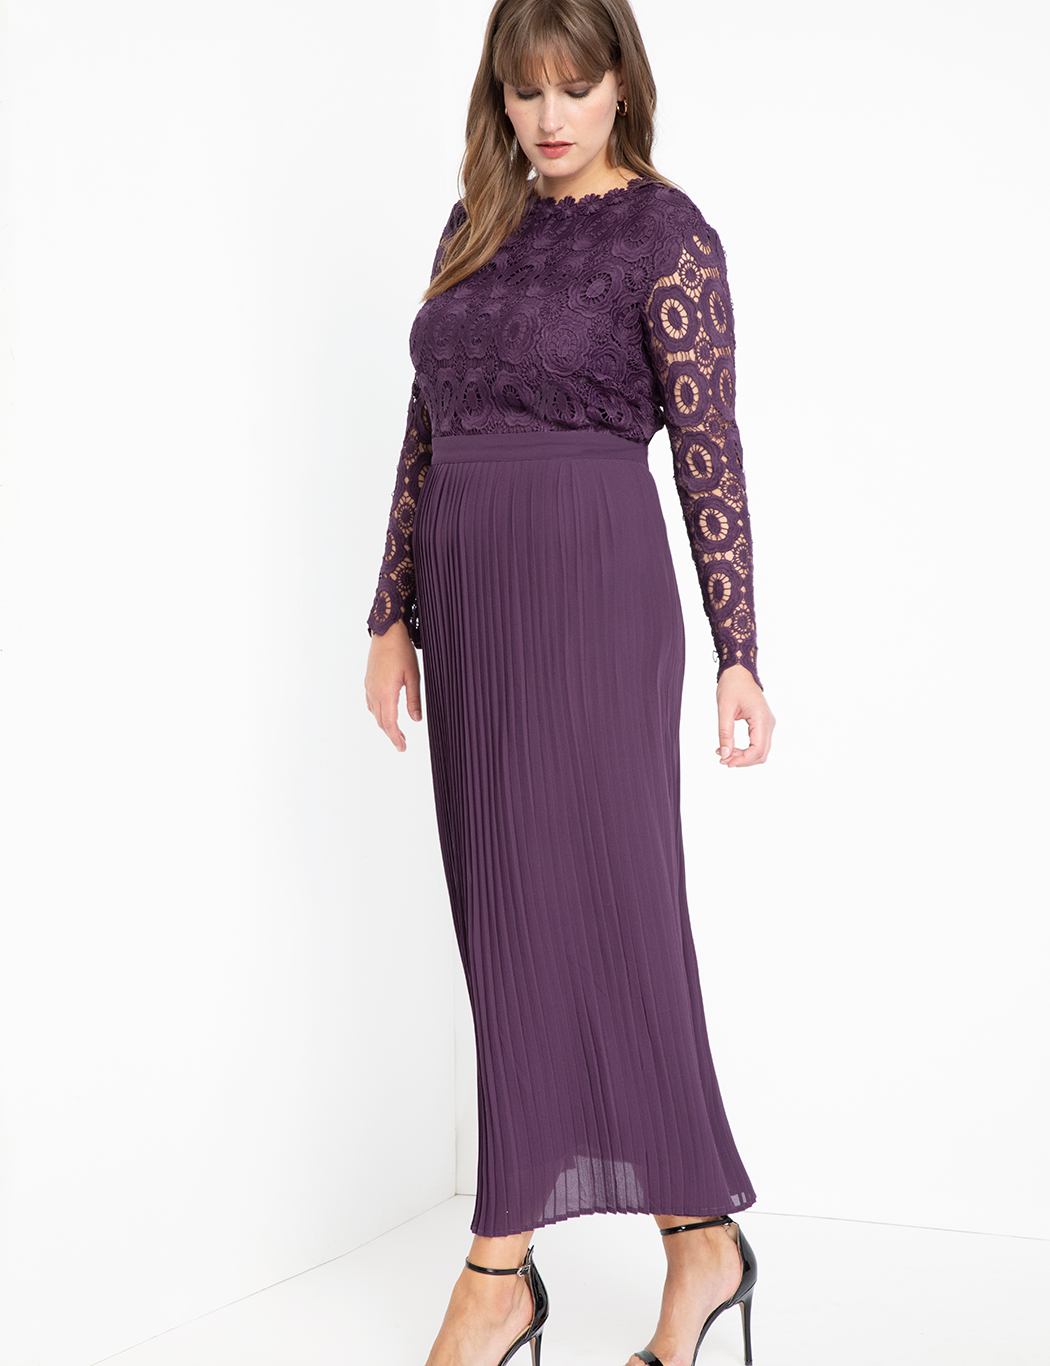 Lace Evening Dress with Pleated Skirt